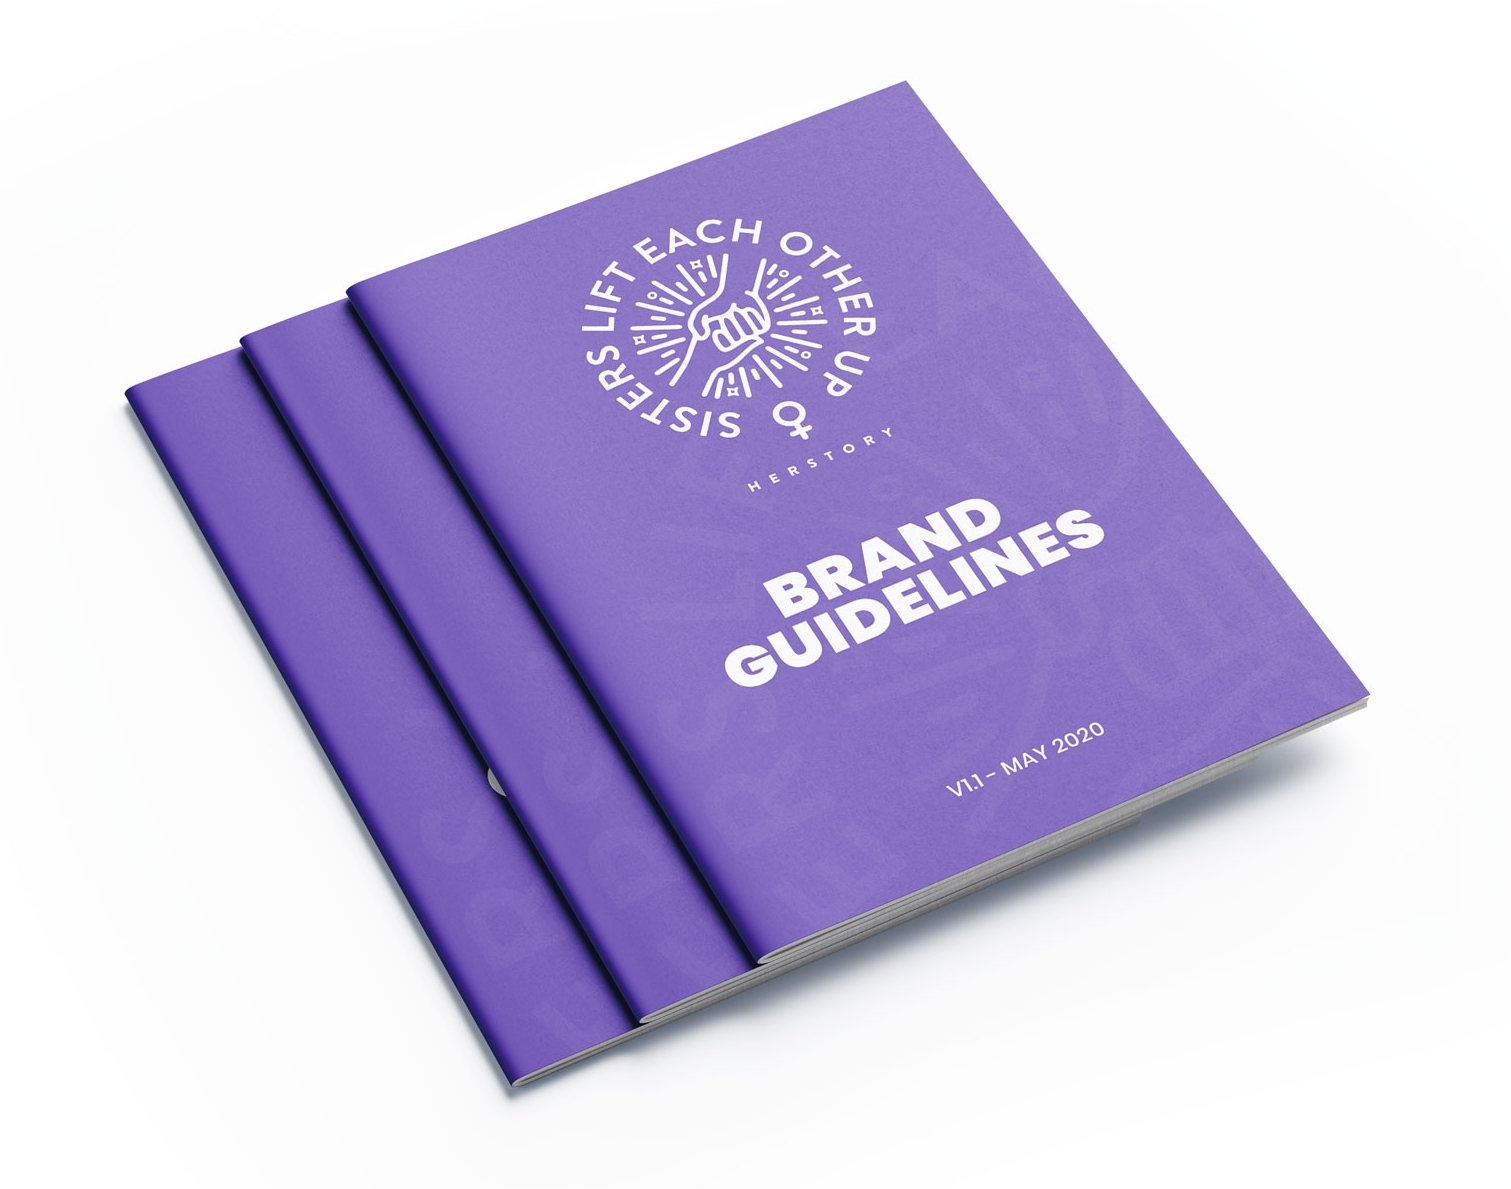 BRAND GUIDEINES PRINTED BOOKLET IDEA DESIGN AGENCY 2 e1587657562644